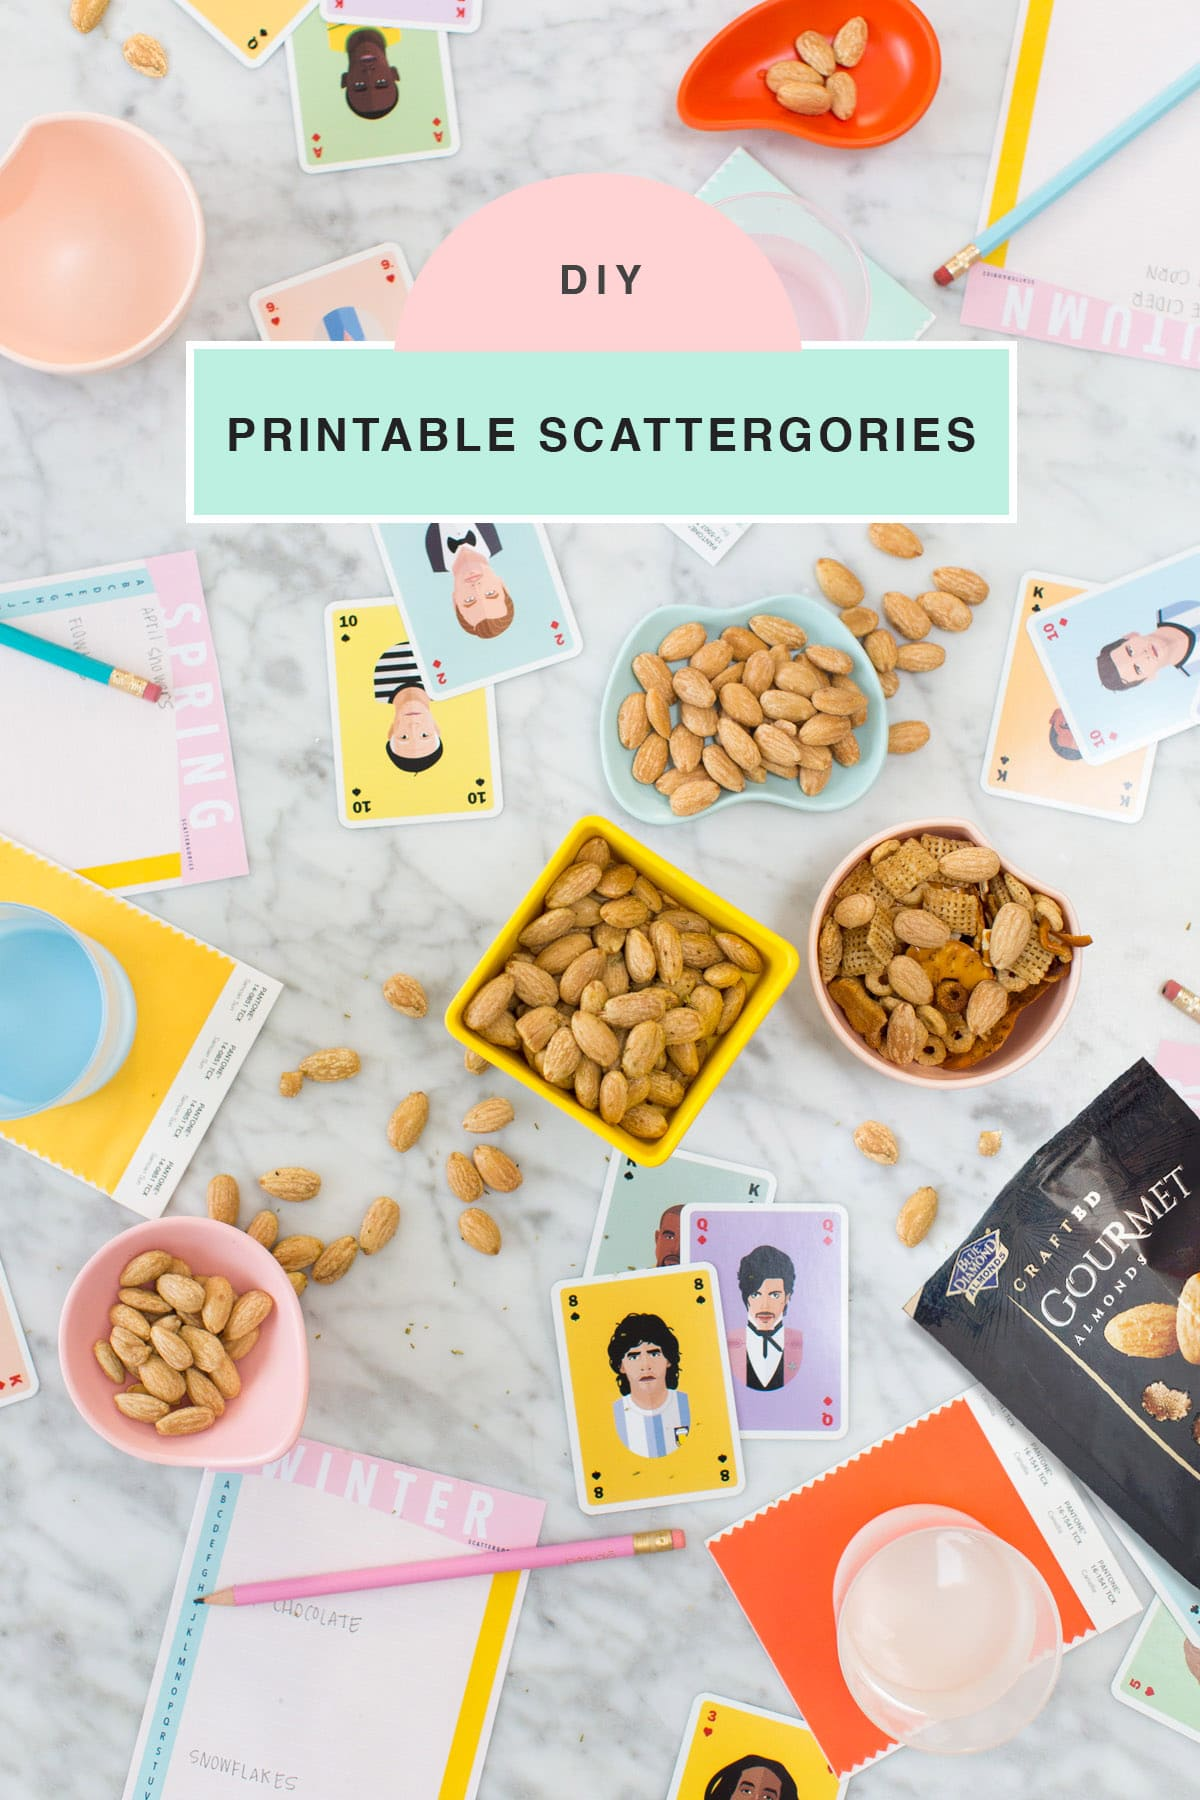 DIY Printable Scattergories Game Night by top houston lifestyle blogger Ashley Rose of Sugar & Cloth #diy #printable #entertaining #games